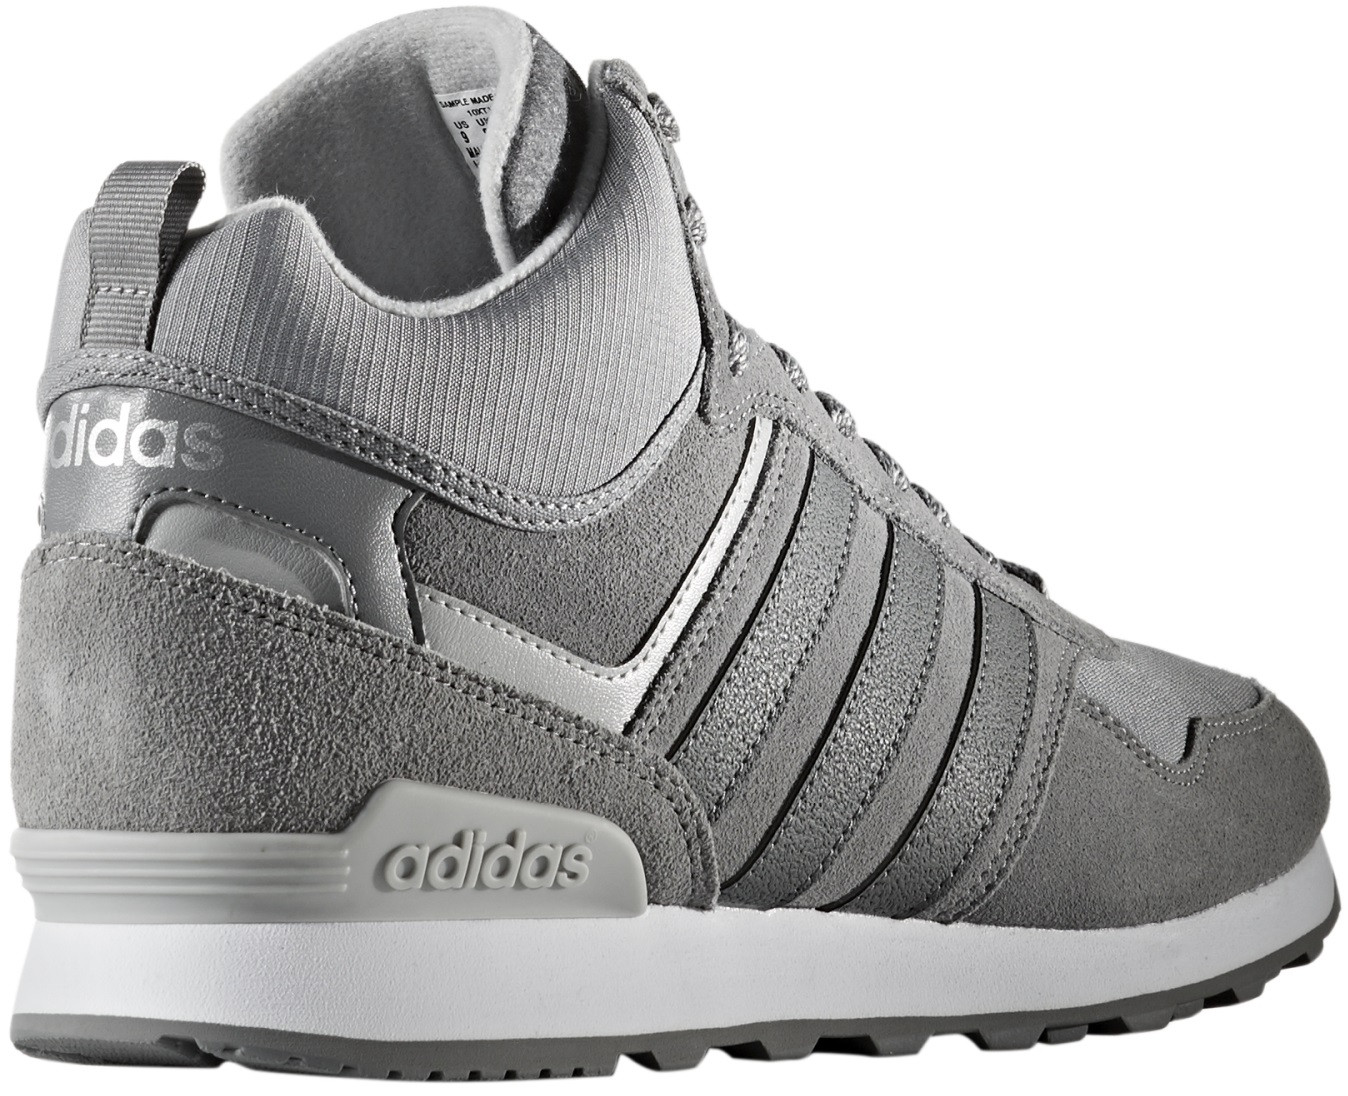 Adidas Neo Shoes 10xt Wtr Mid Grey